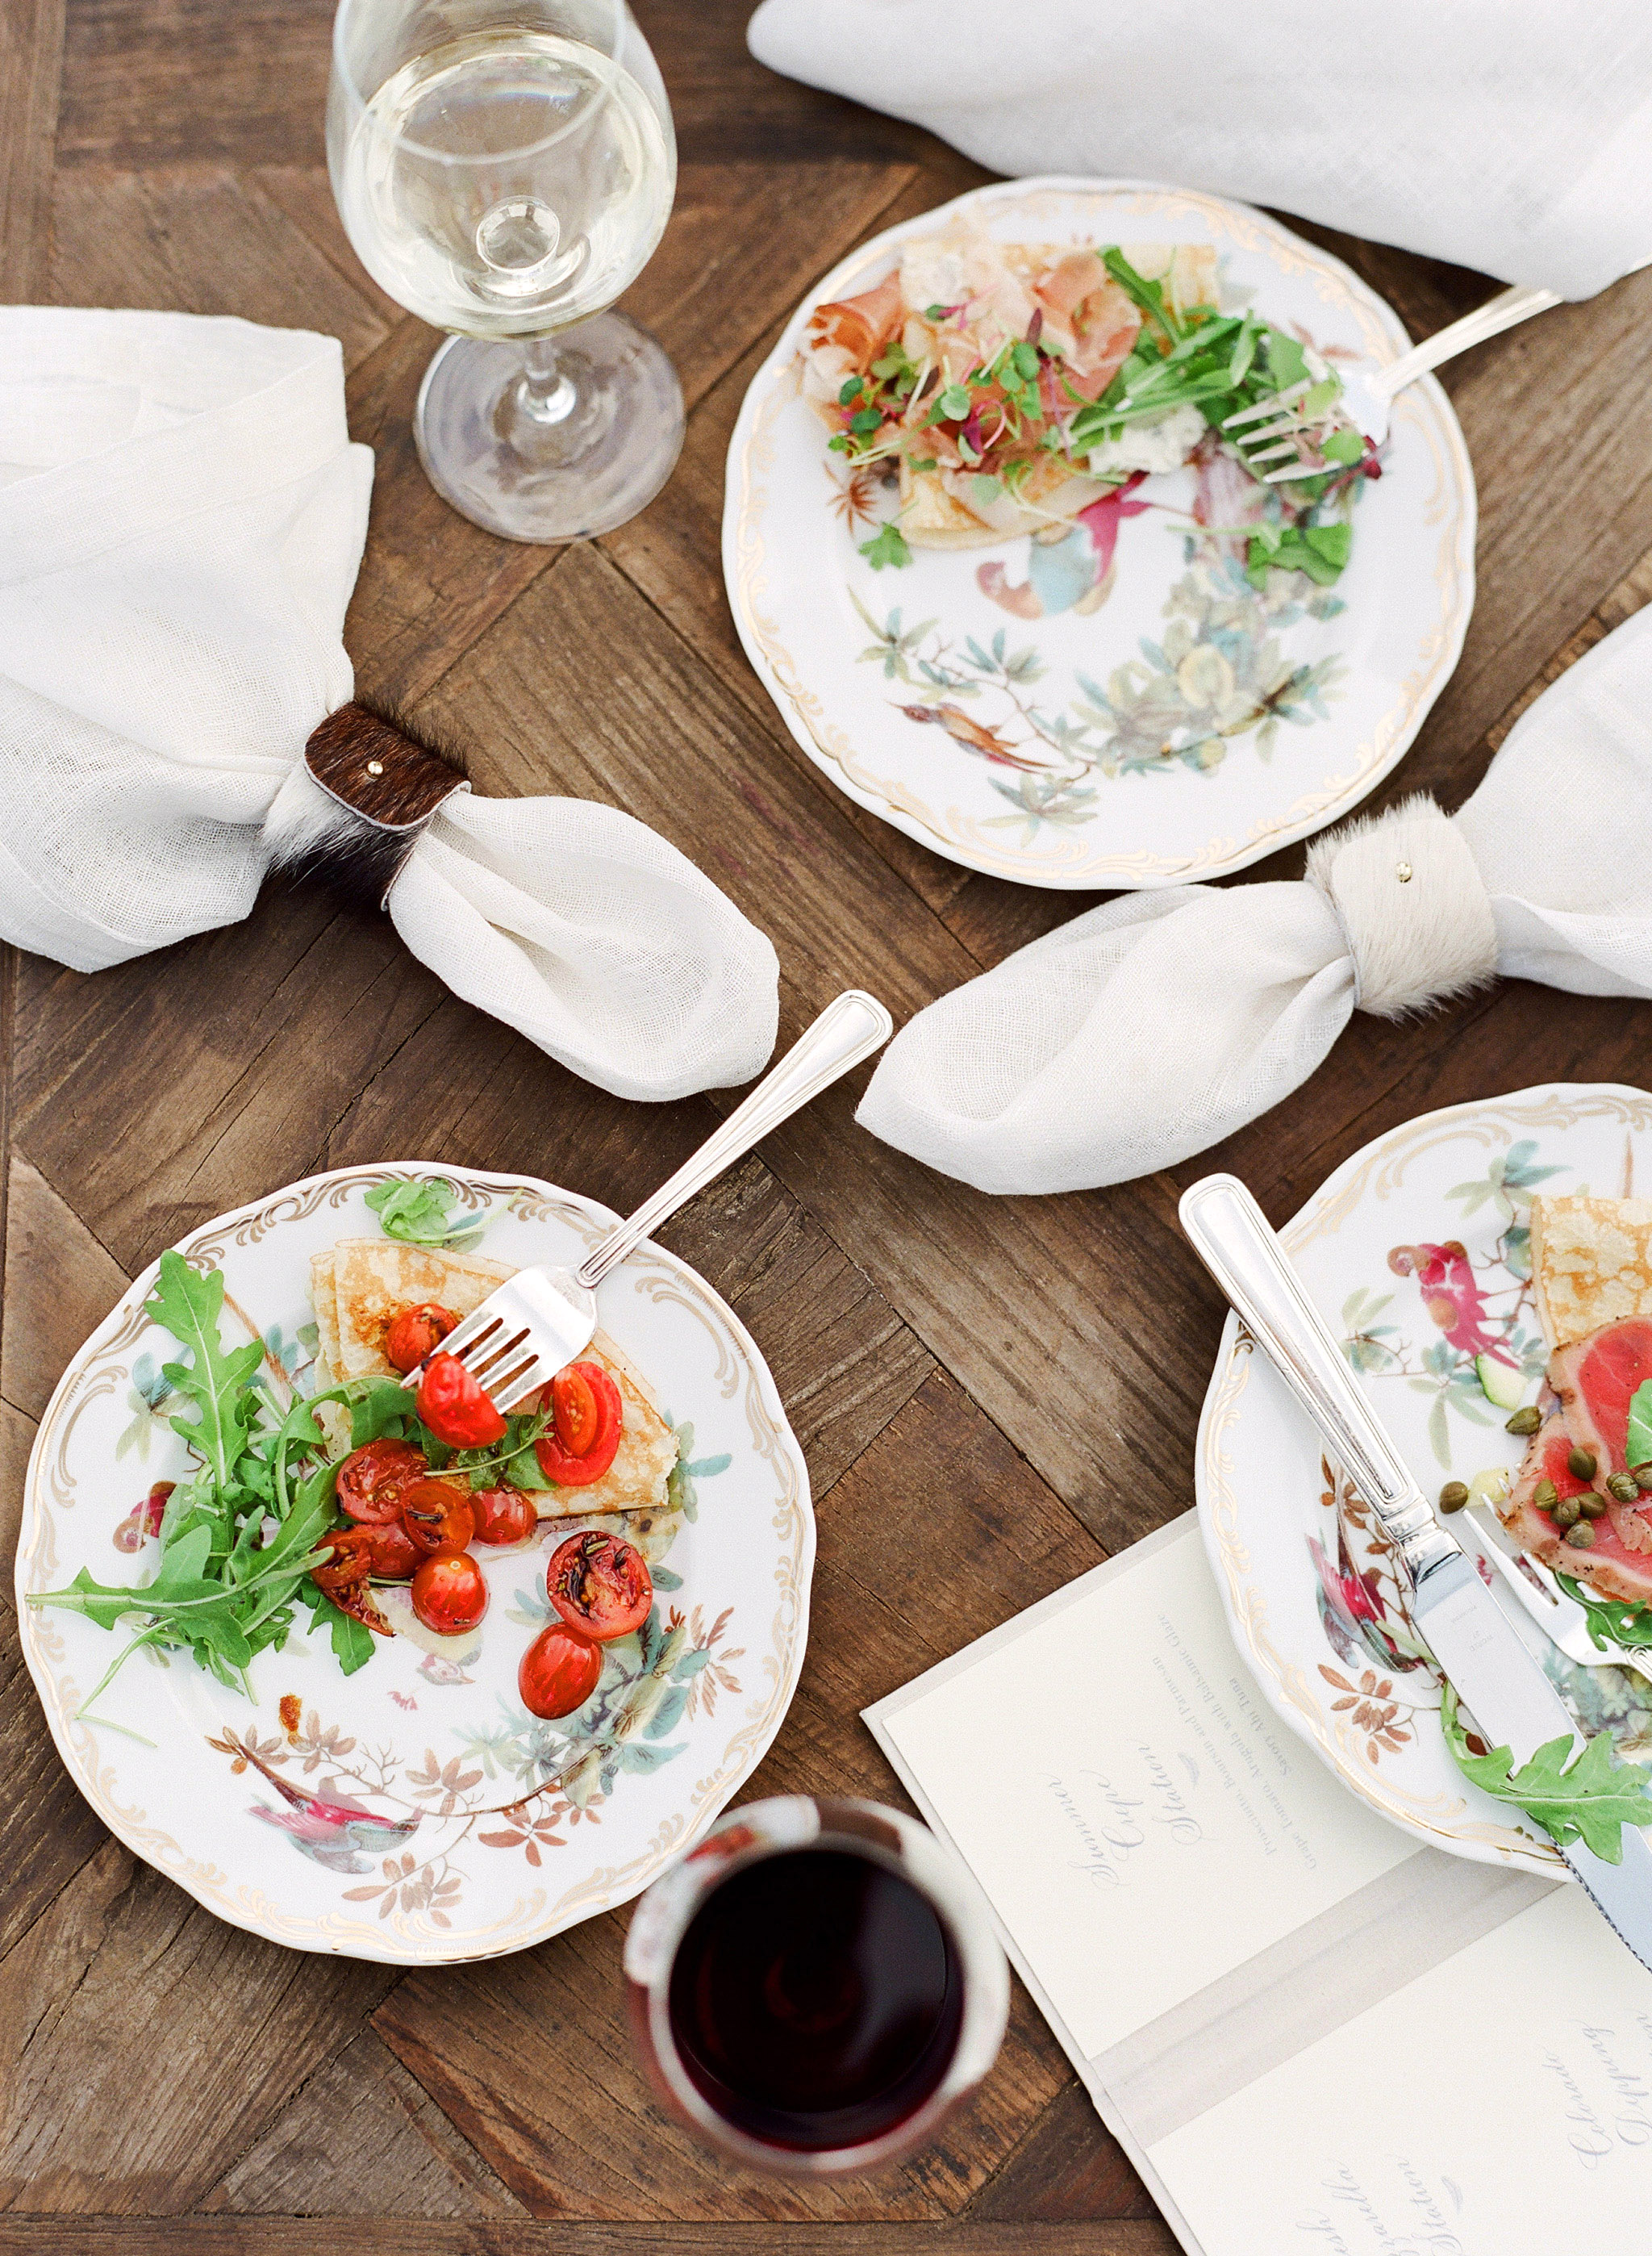 Why Do Some Wedding Caterers Hold Group Food Tastings?